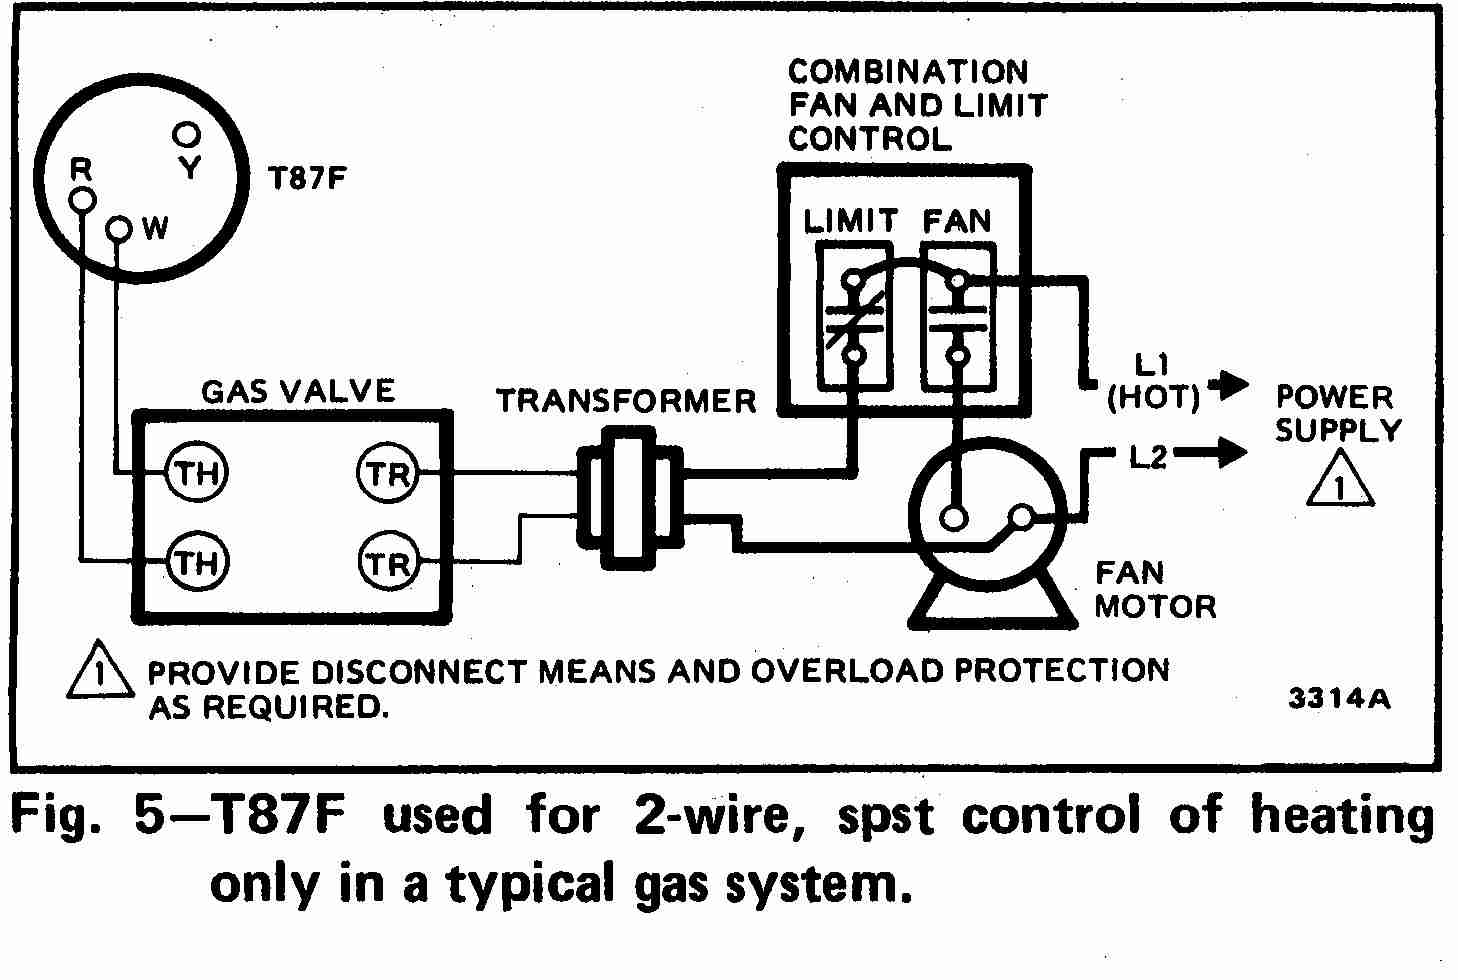 TT_T87F_0002_2Wg_DJF space heater wiring diagram s700 electric heater wire diagram Basic Outlet Wiring Diagrams at aneh.co